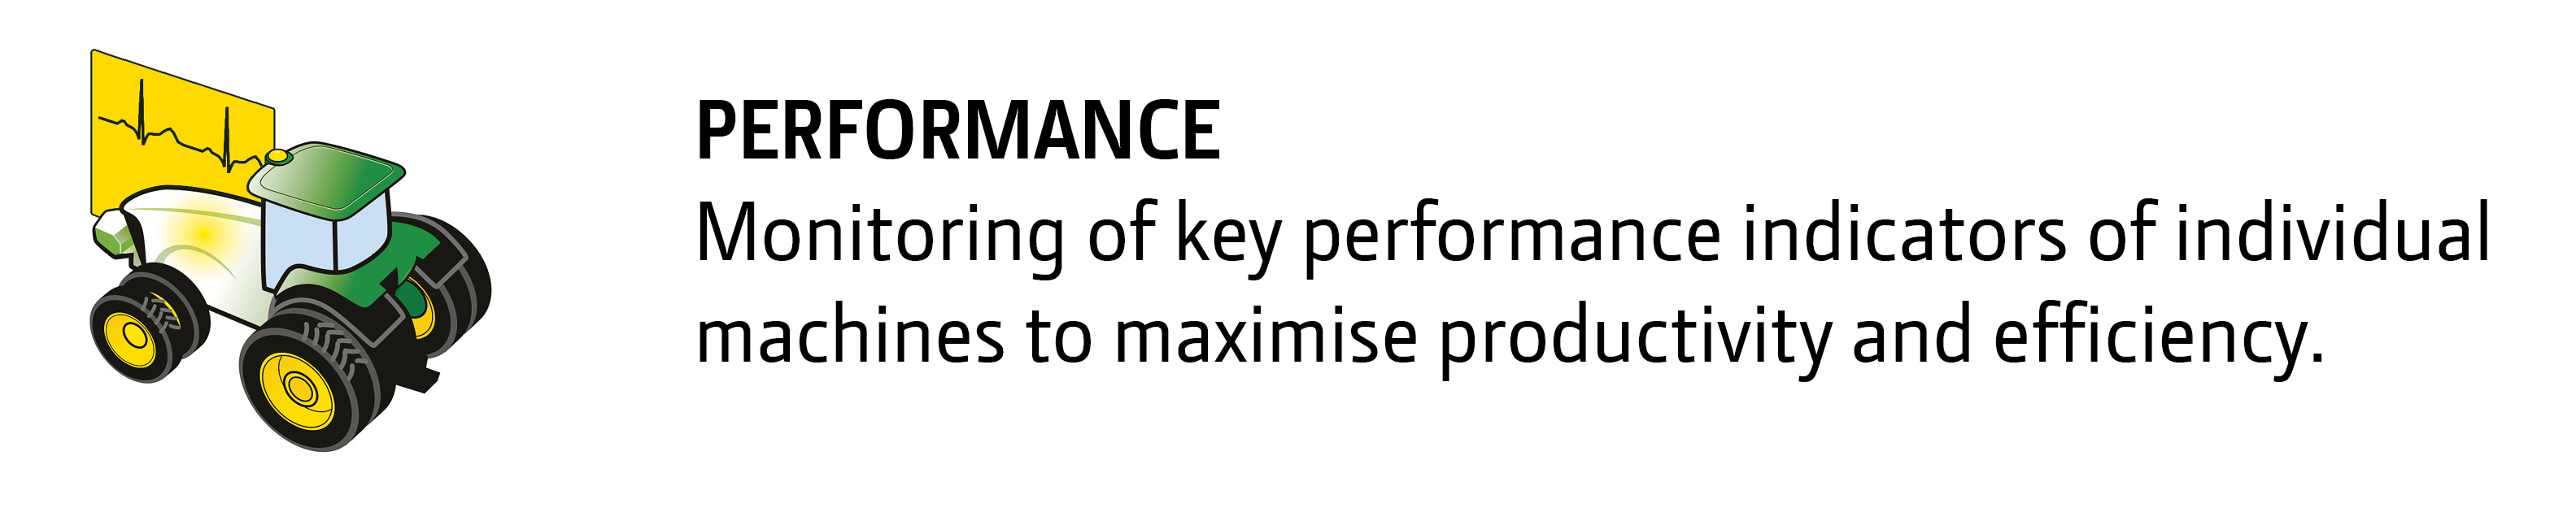 Performance link